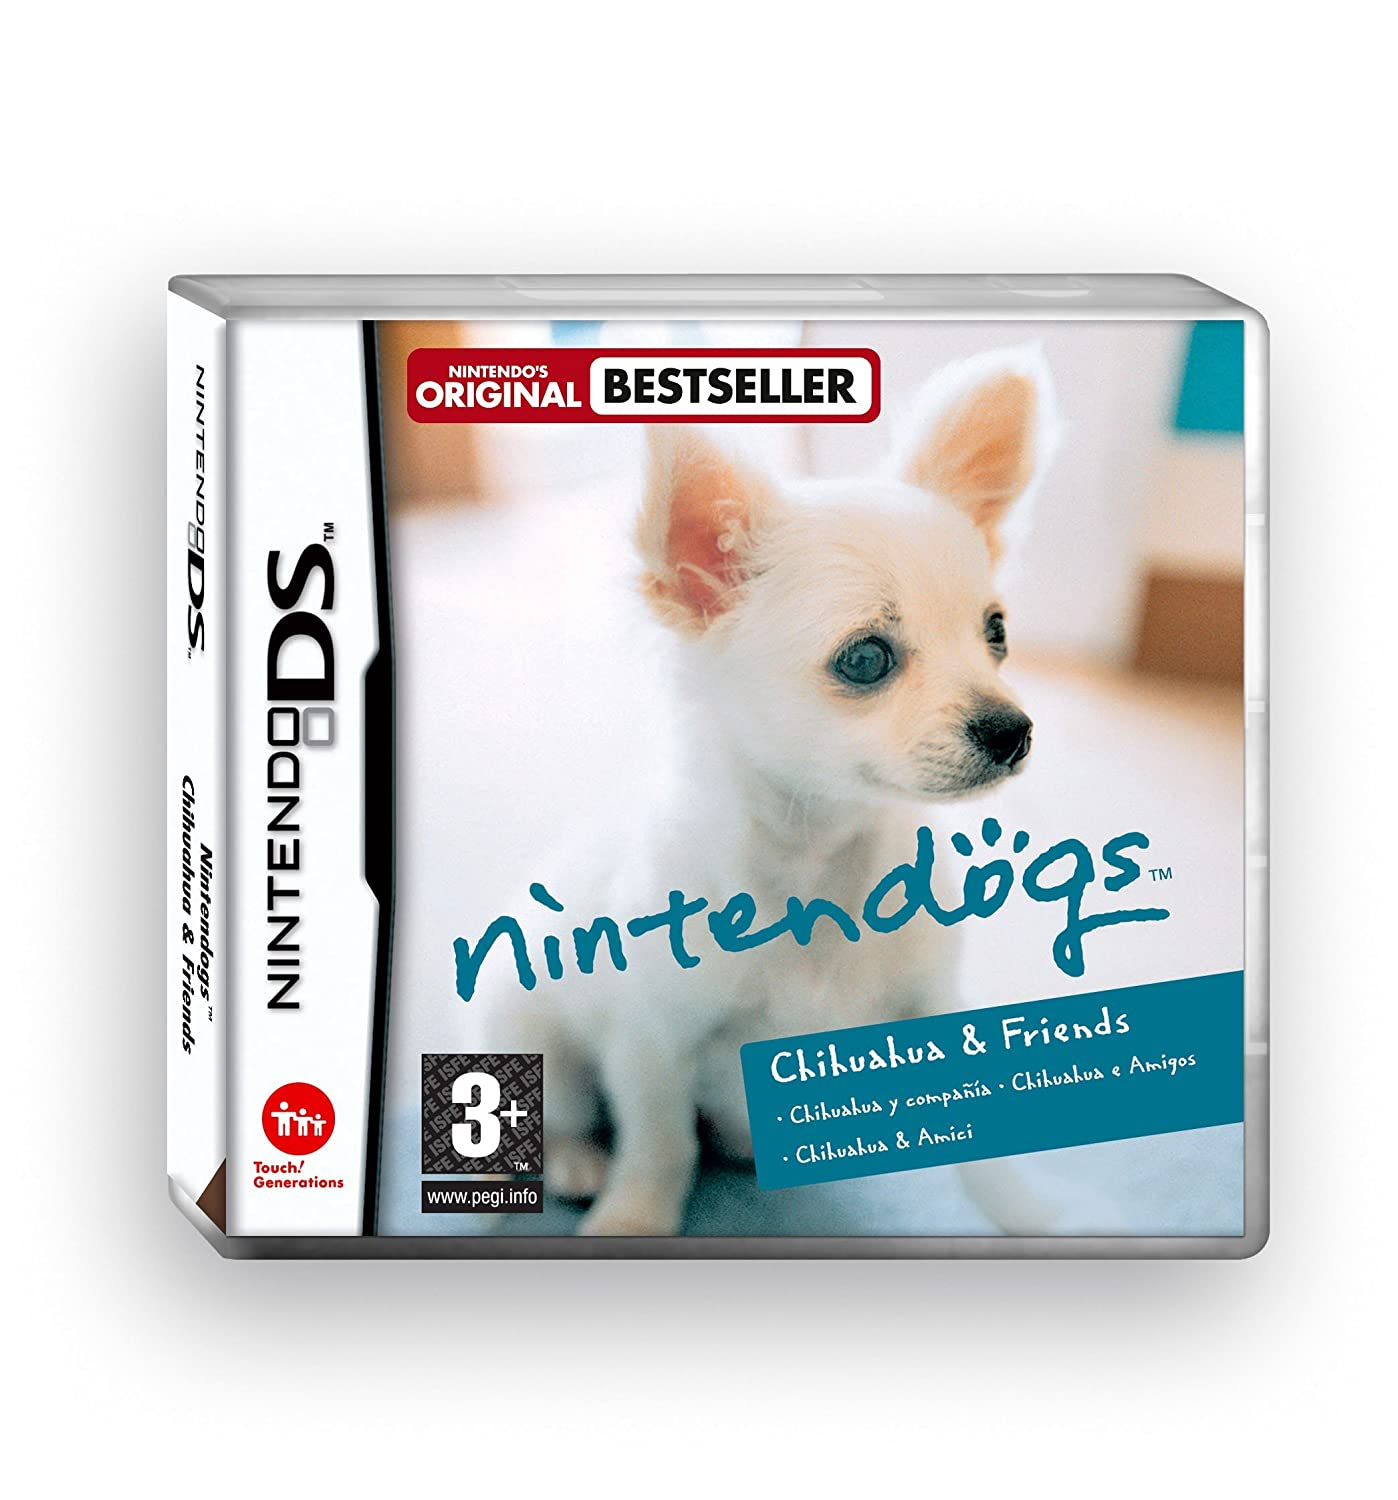 Nintendogs Chihuahua Inventory Max 57% OFF cleanup selling sale Friends